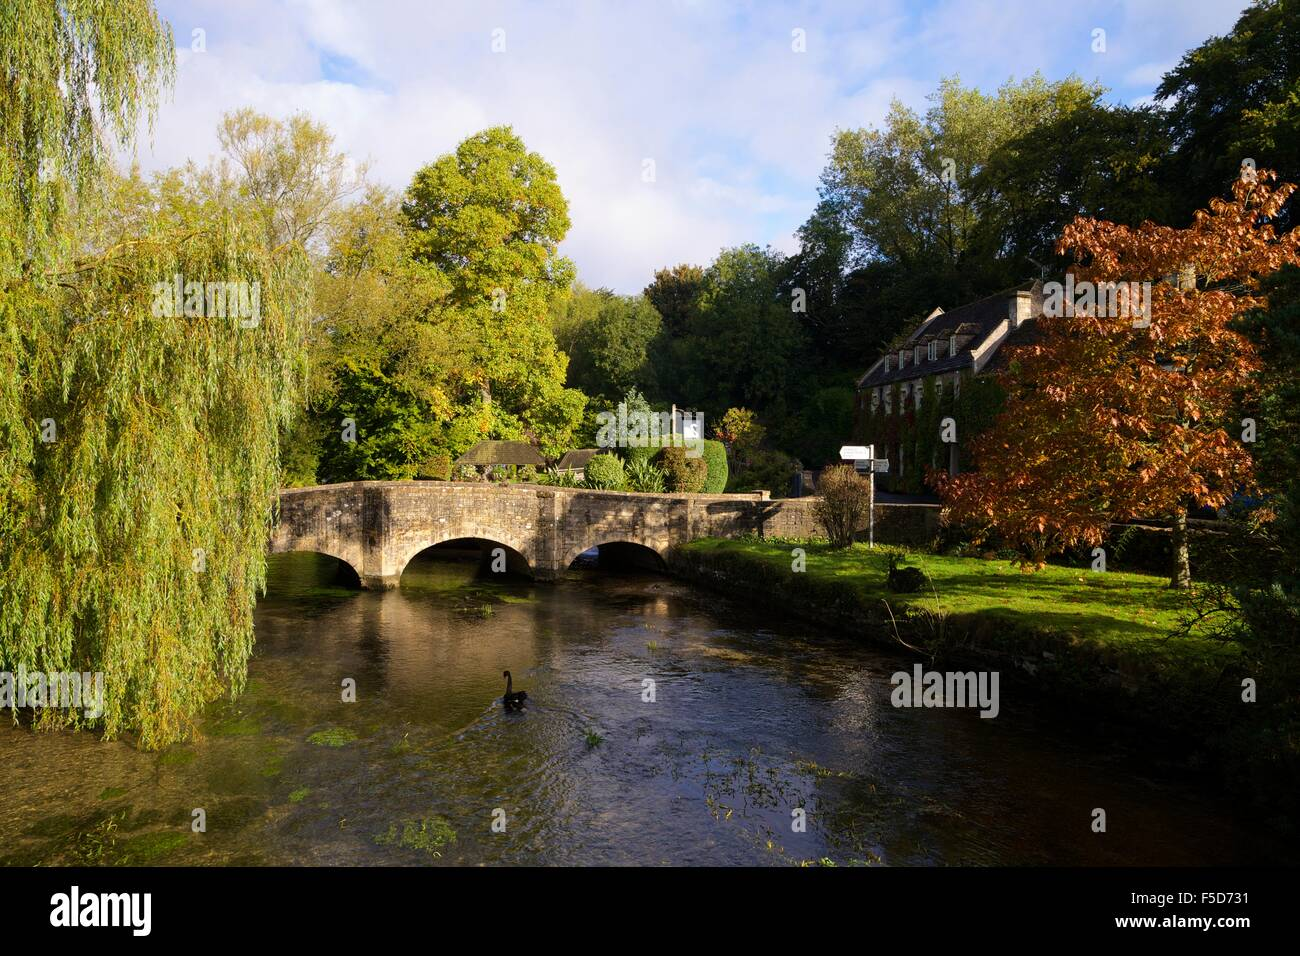 River Coln and Swan Hotel,  Bibury, Cotswolds, Gloucestershire, England, UK, GB, Europe - Stock Image